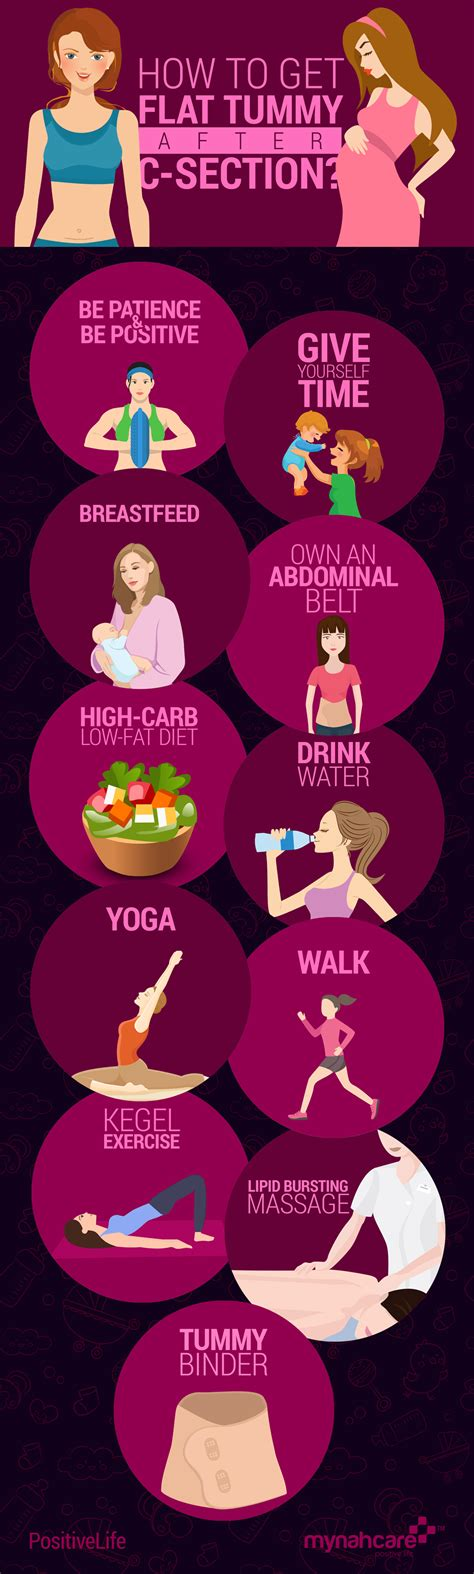 c section tummy exercises 7 pregnancy products that make life easier pregnancy